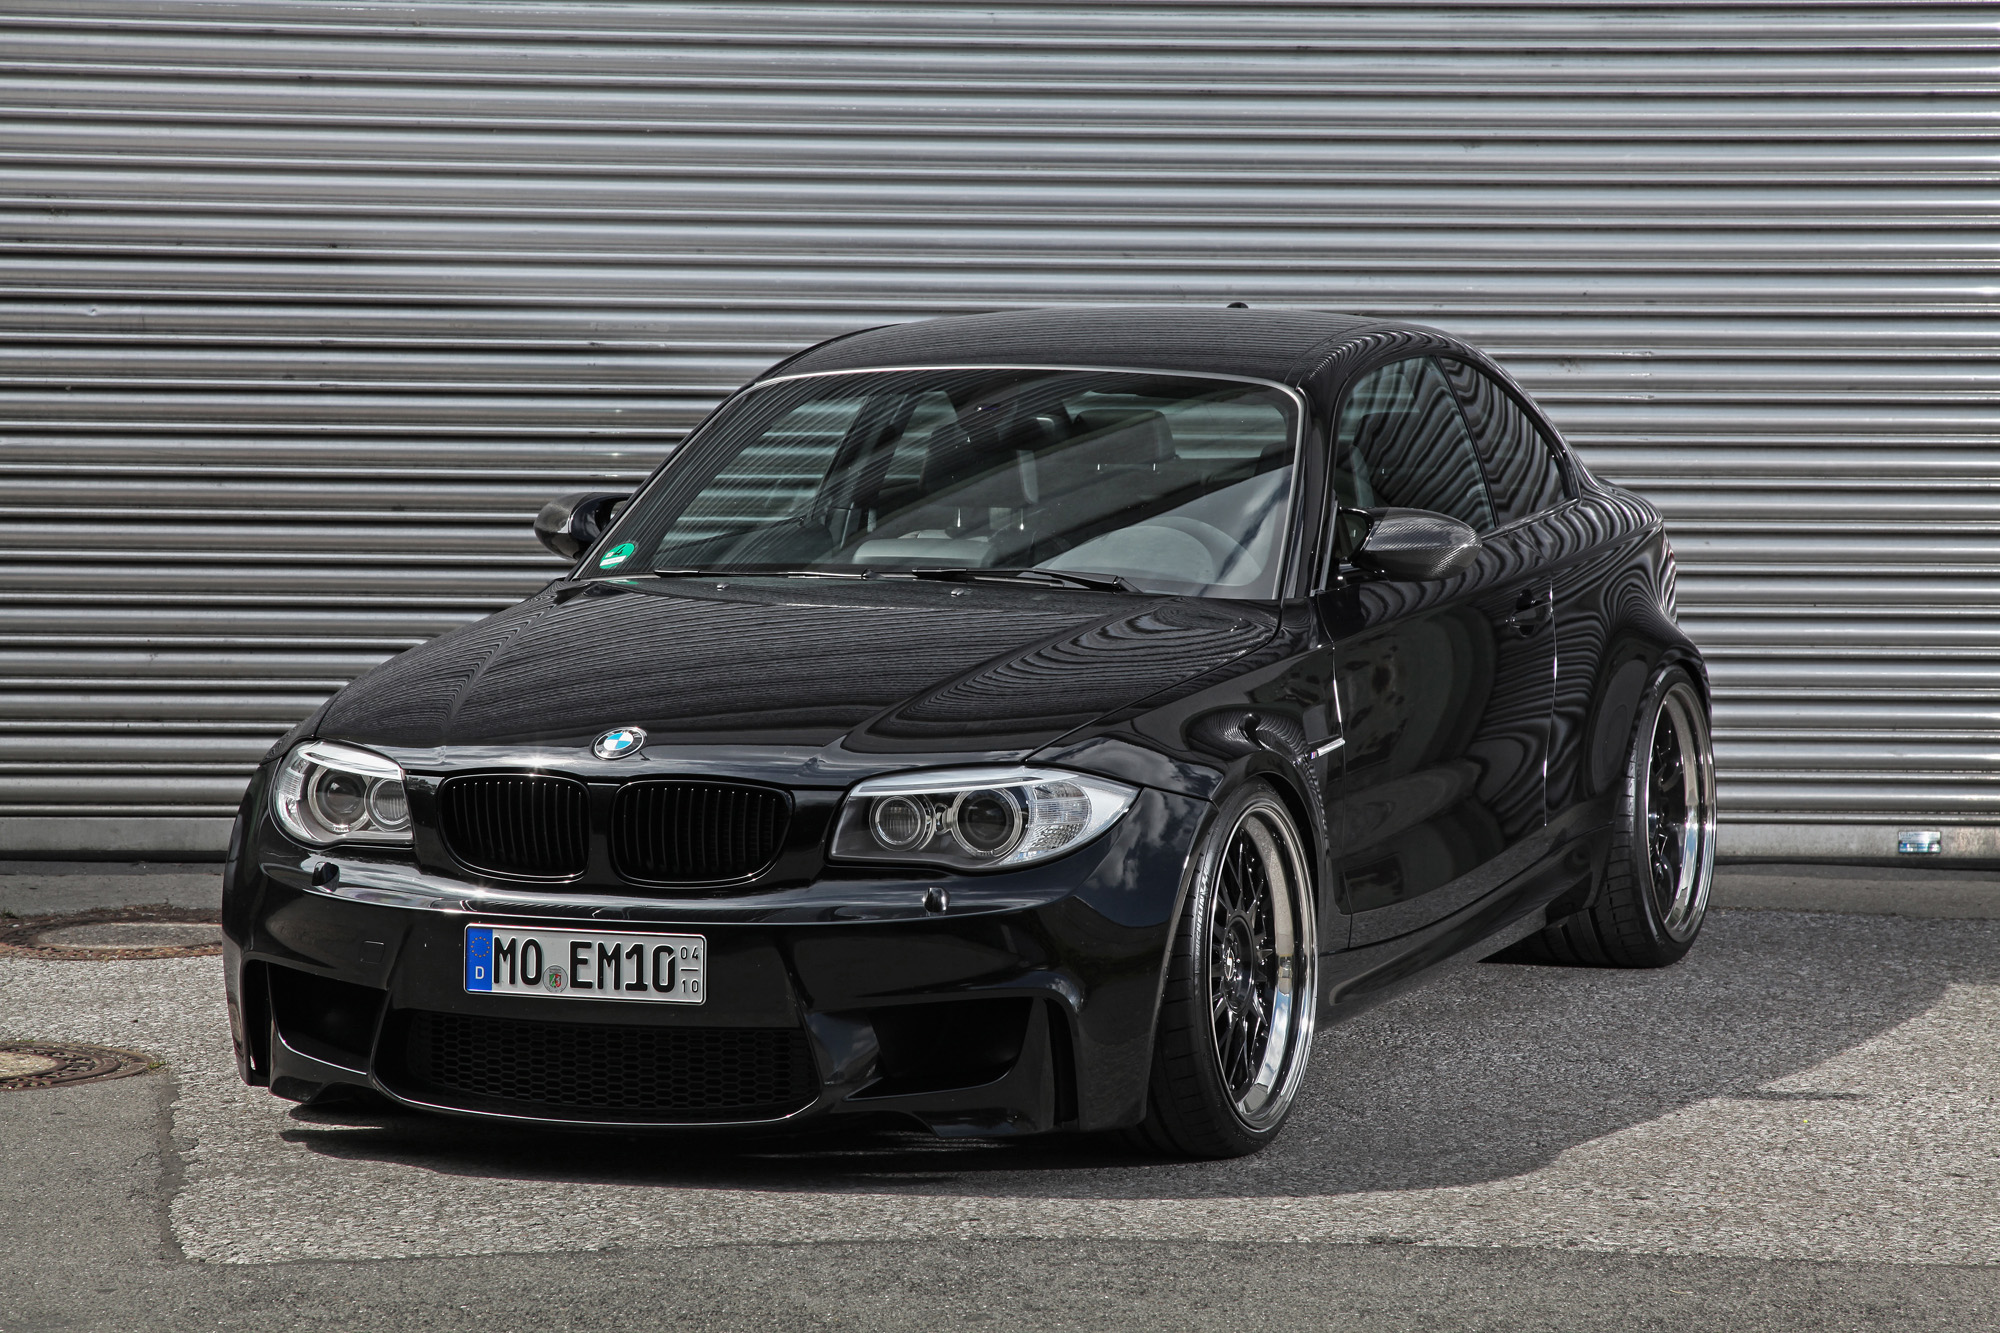 bmw-1er-m-coupé-e82-ok-chiptuning-07